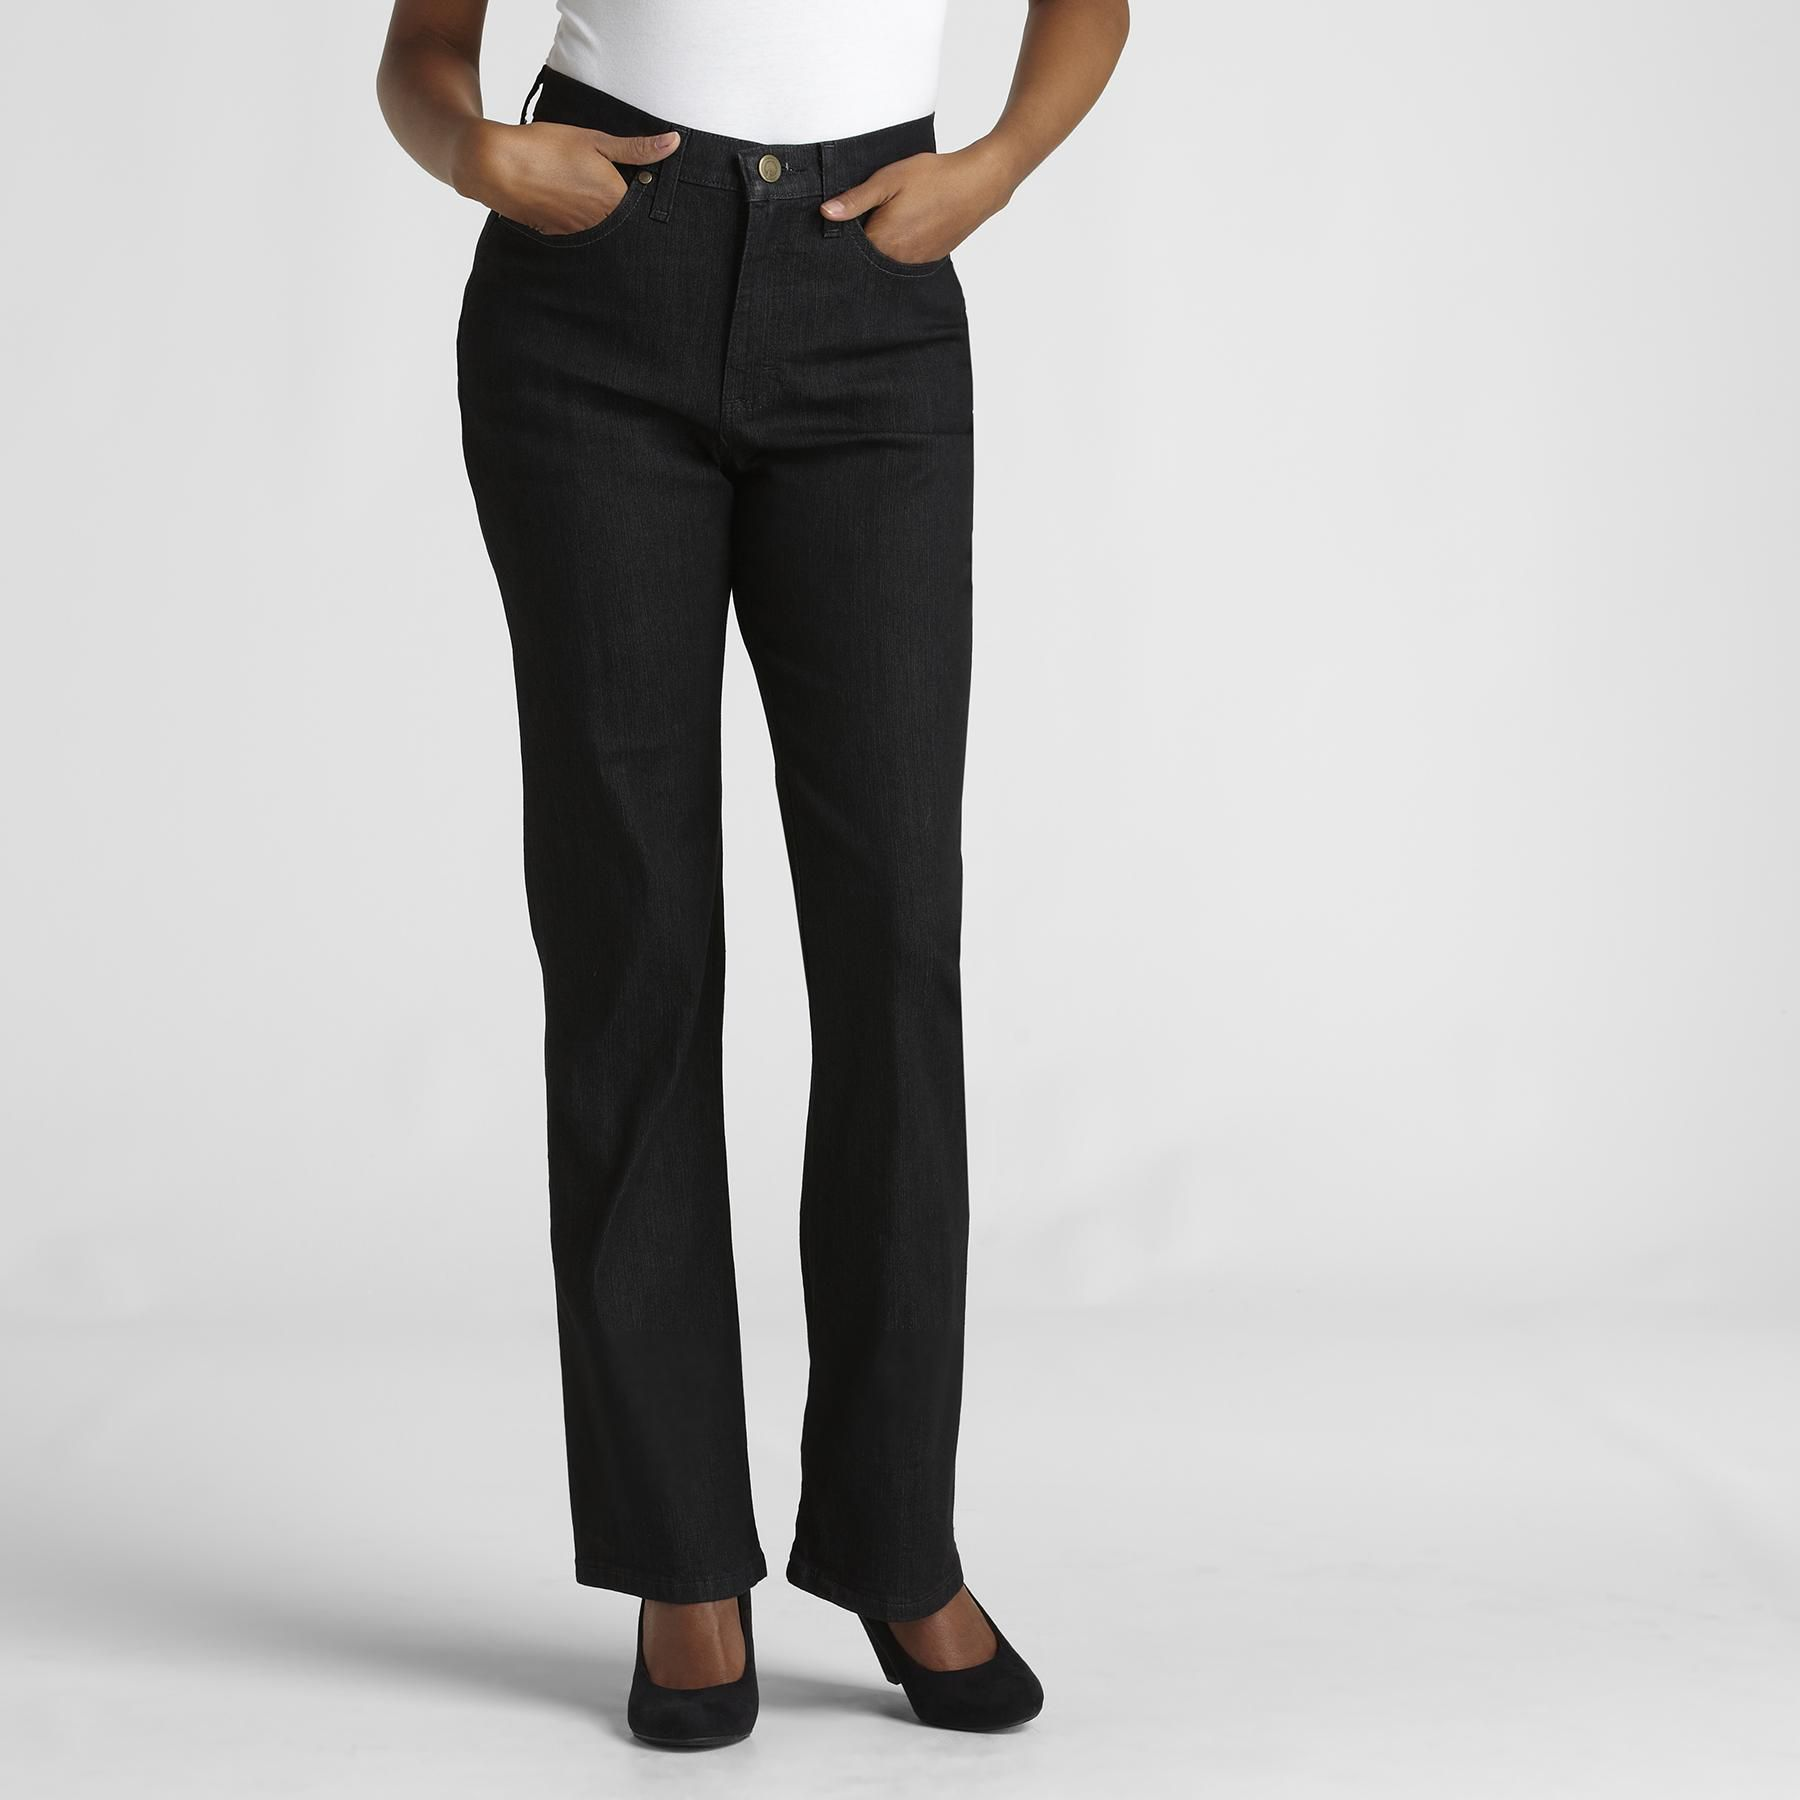 LEE Women's Classic Bootcut Jeans at Sears.com